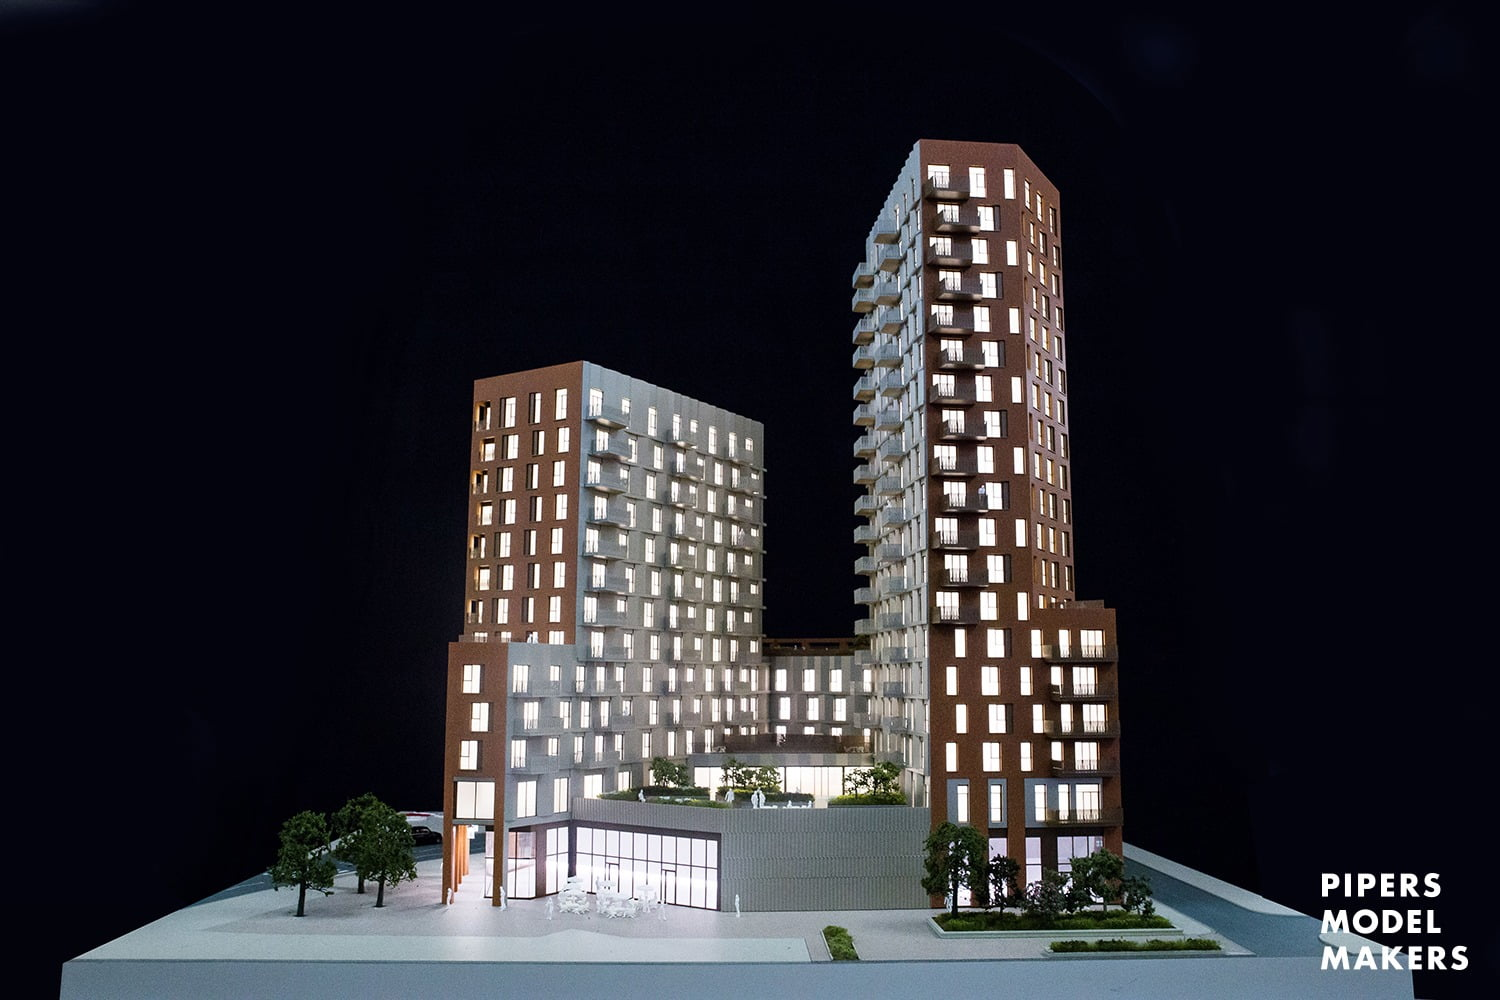 http://1%20Ashley%20Road%20Argent%20Related%20Architectural%20Model